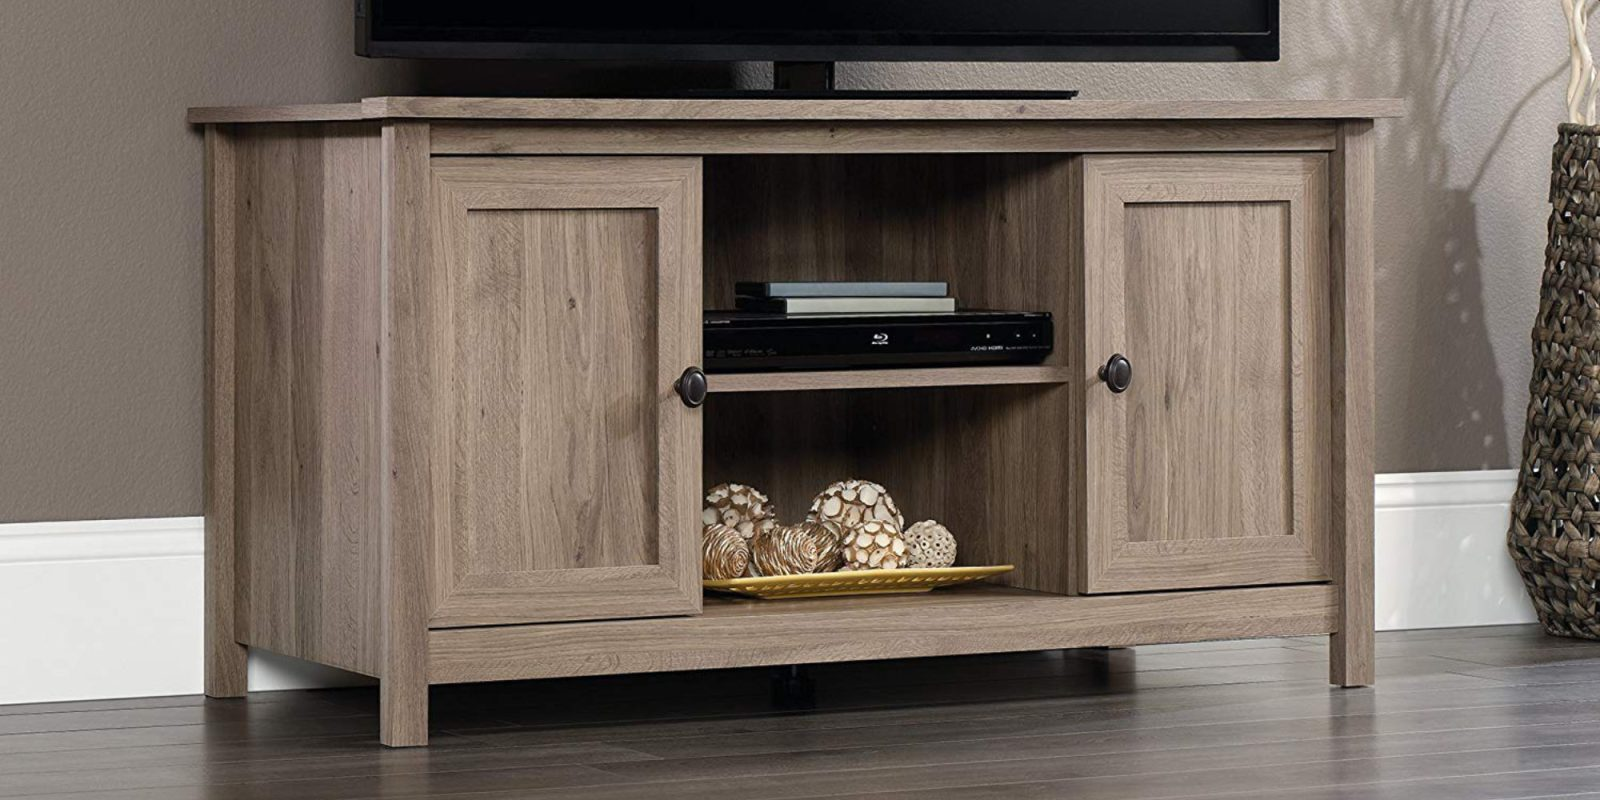 Refresh the living room with Sauder's County Line TV Stand: $103 (Save 25%)